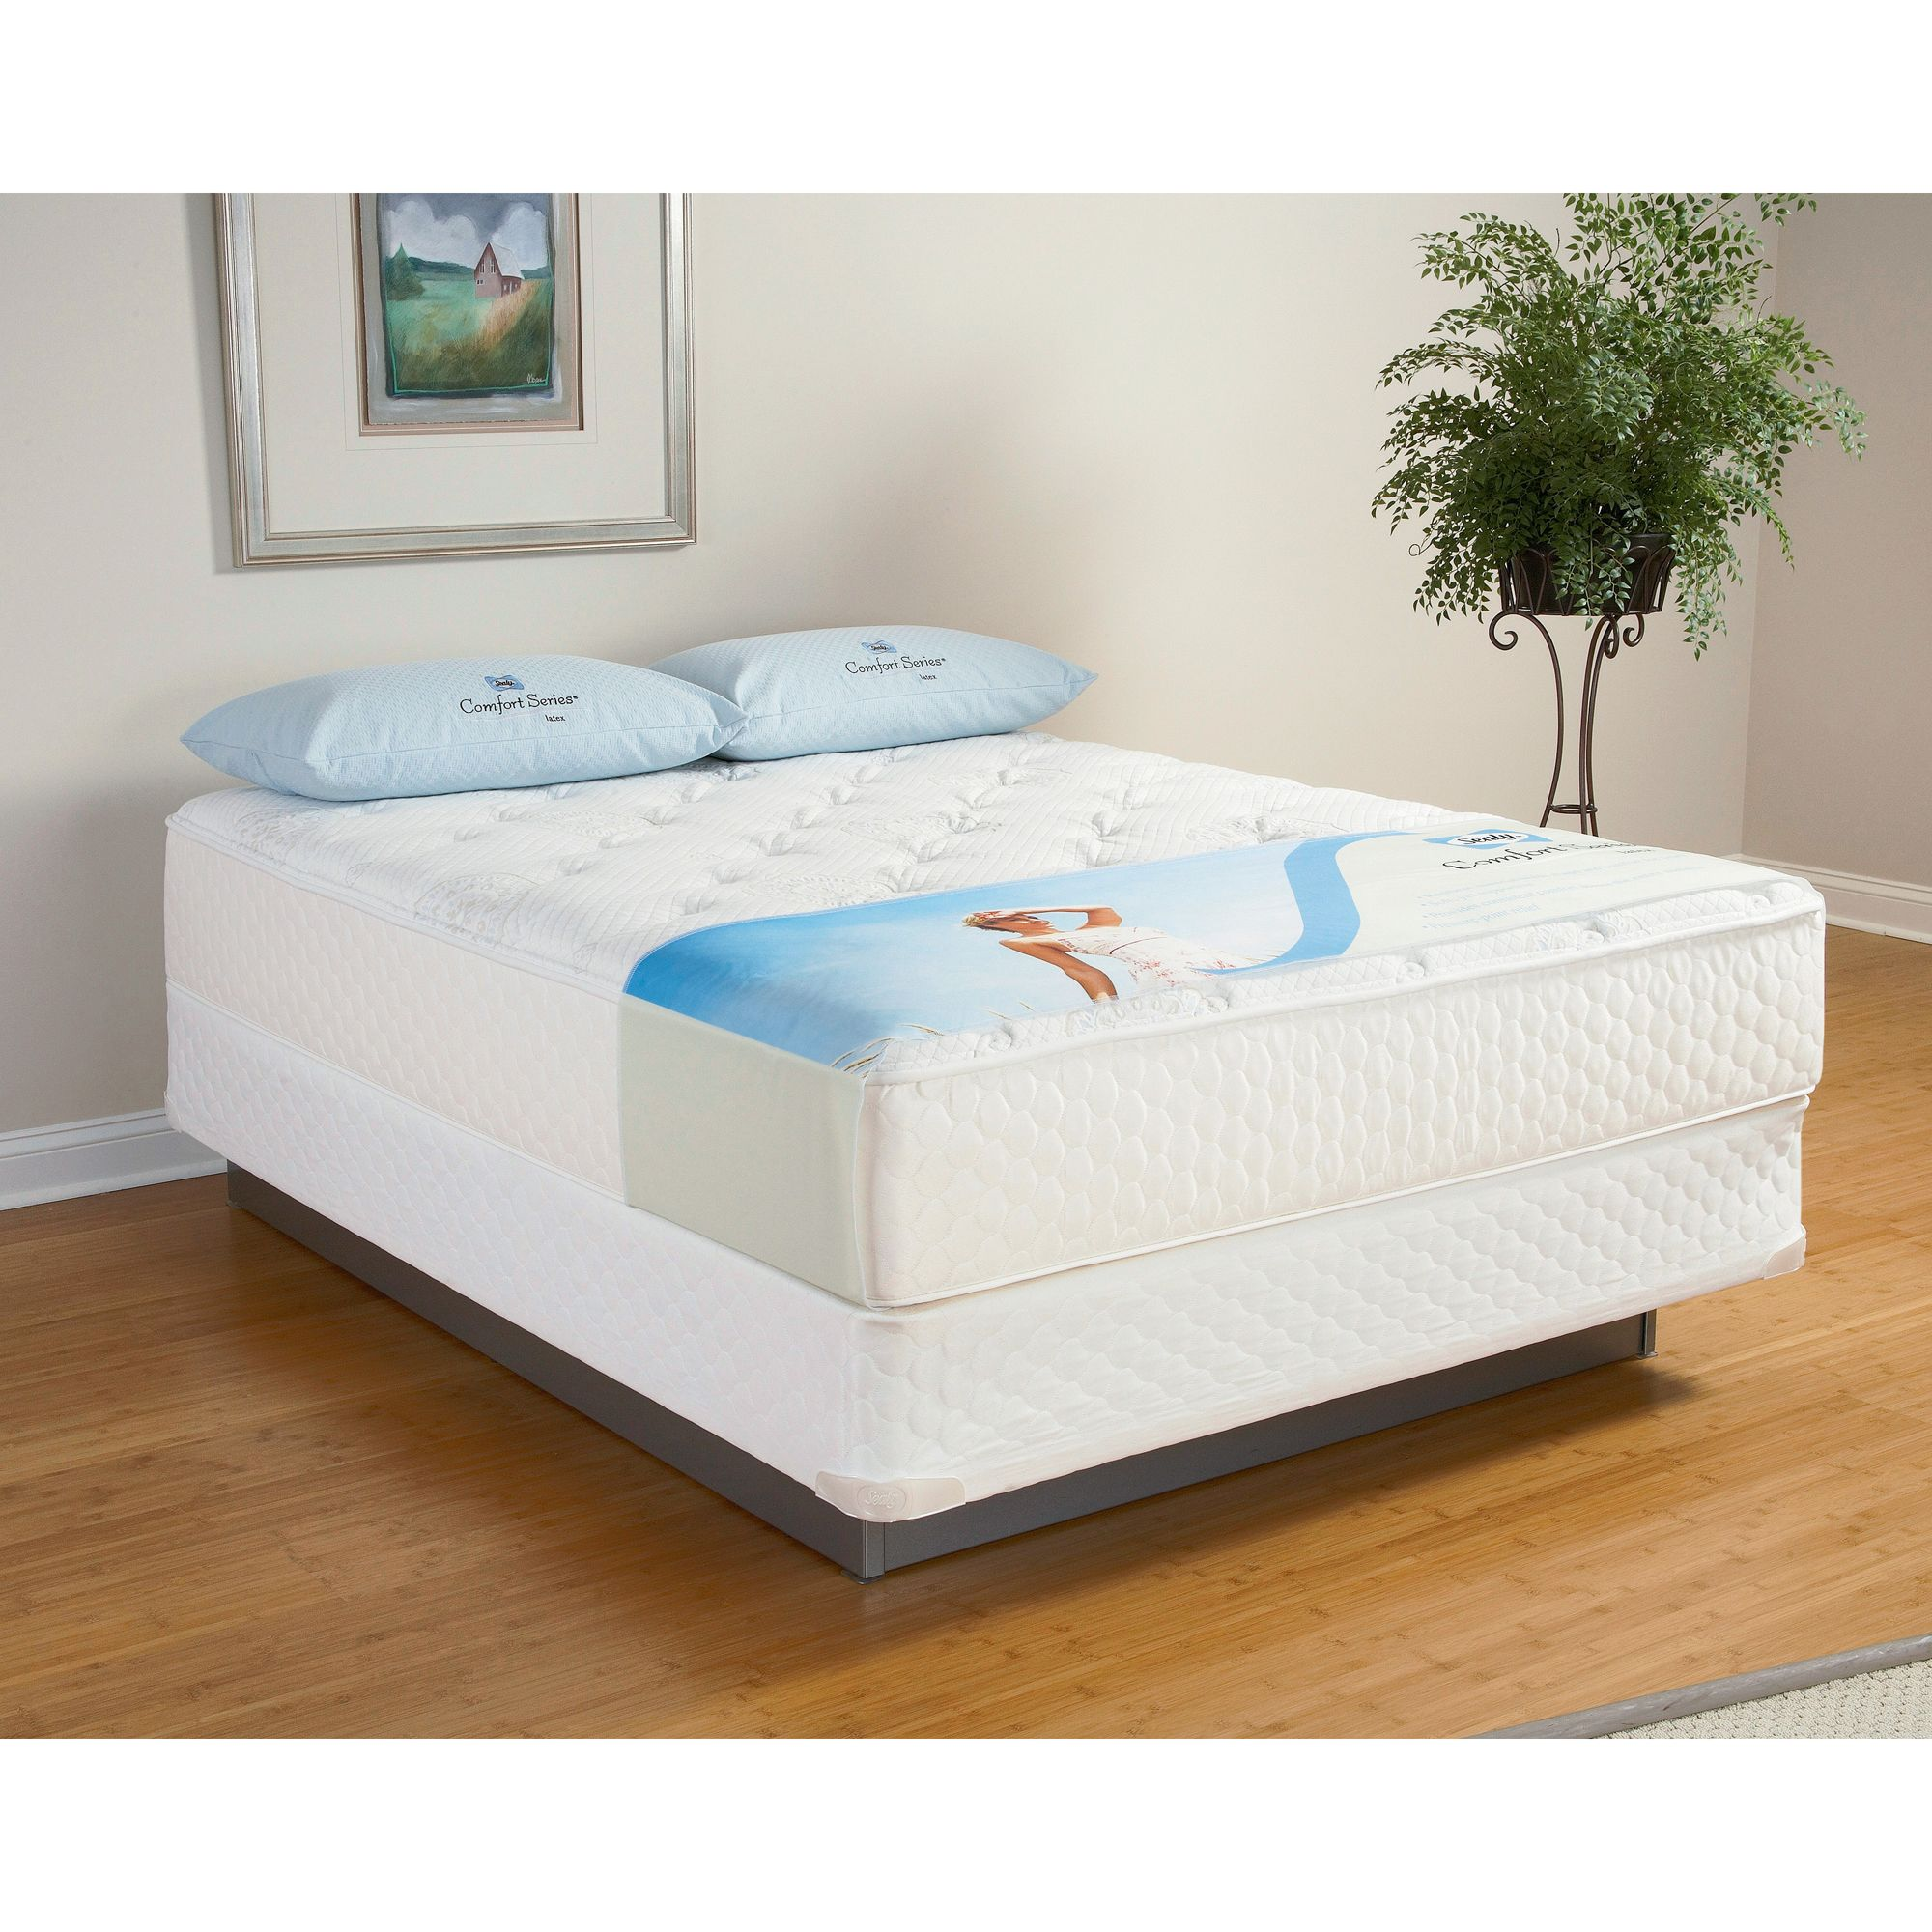 Tranquil-Sea-Plush-Latex-King-Mattress